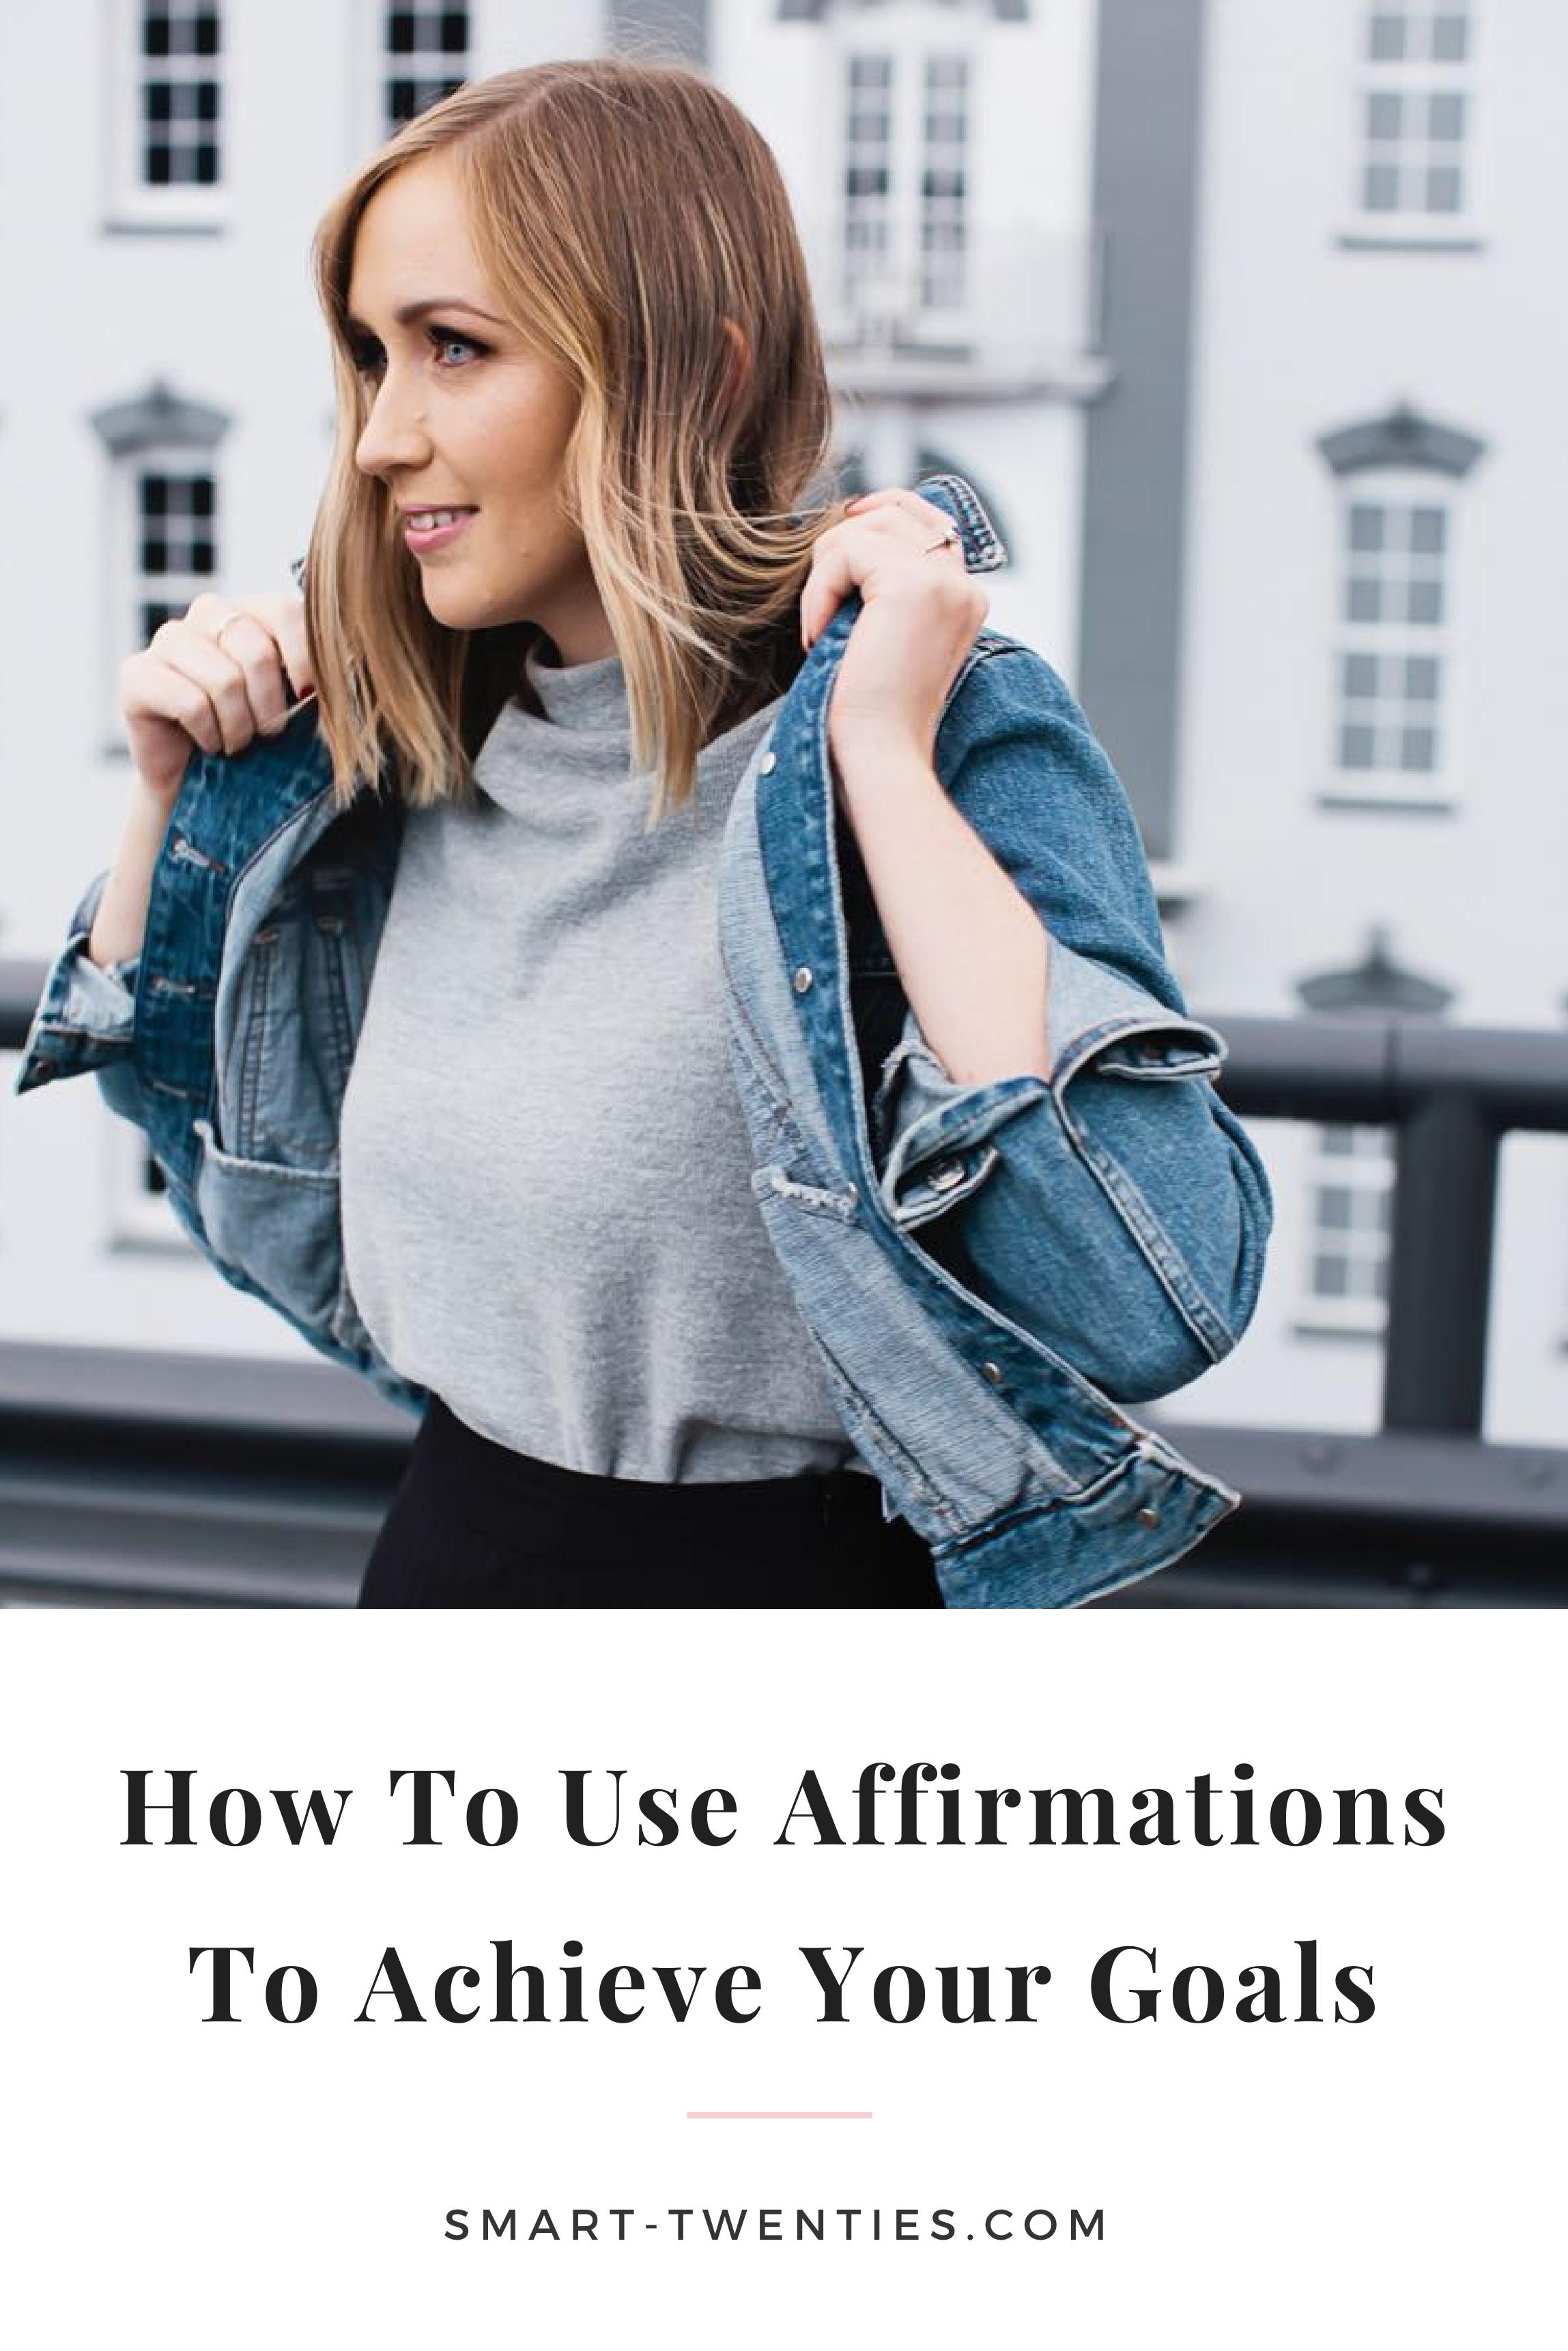 Advice on how to use affirmations and the law of attraction to help you achieve your goals and be successful in your twenties